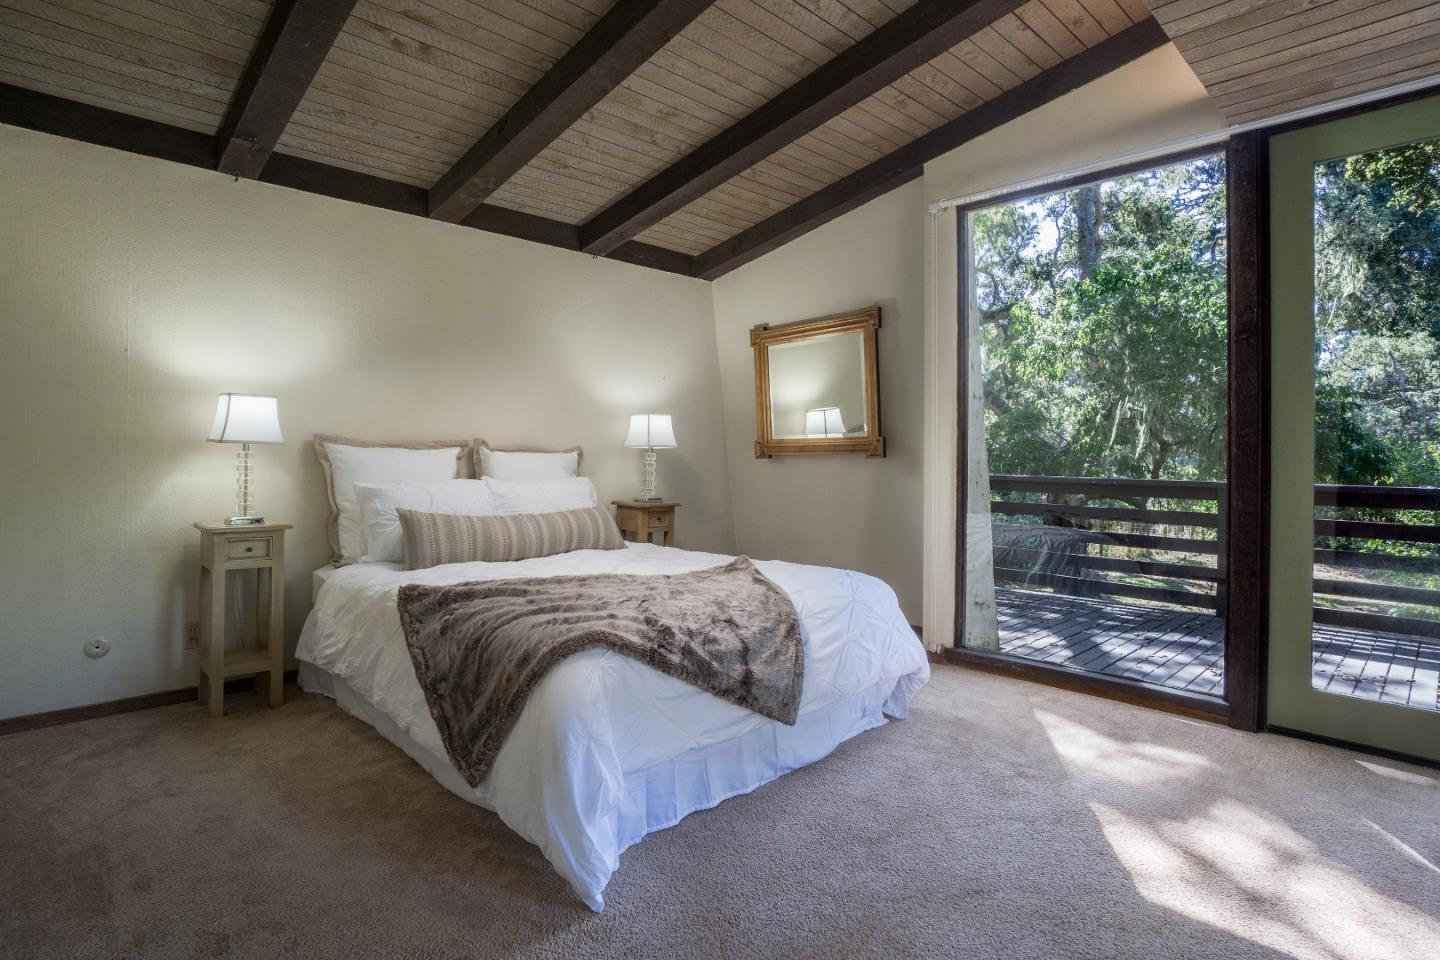 Additional photo for property listing at 2818 Raccoon Trail  Pebble Beach, California 93953 Estados Unidos